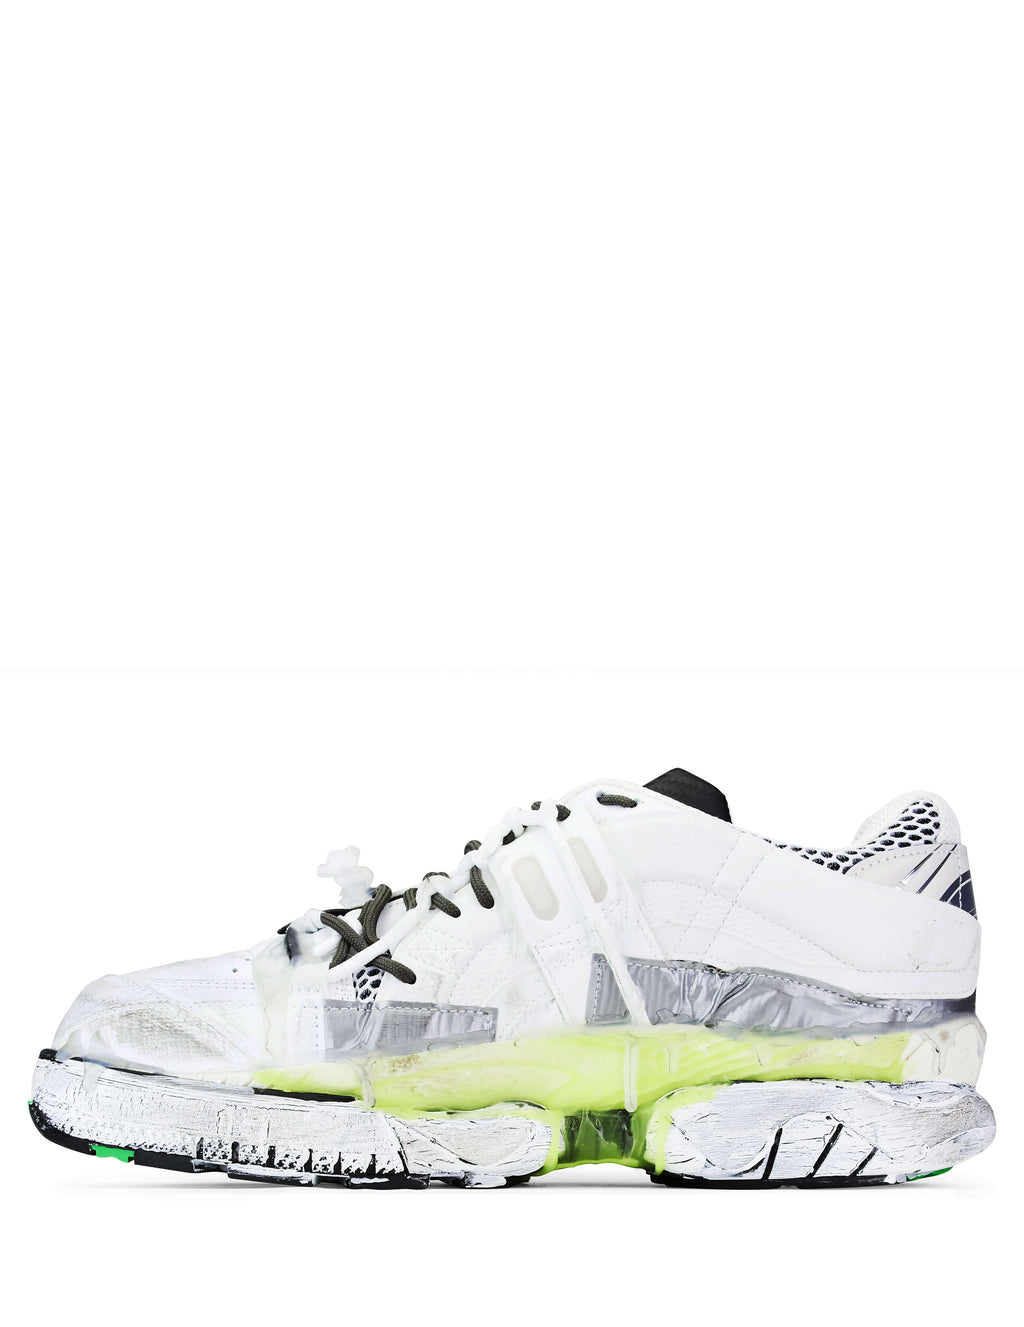 Maison Margiela Men's Giulio Fashion White/Green Fusion Sneakers S57WS0257P1878H6576